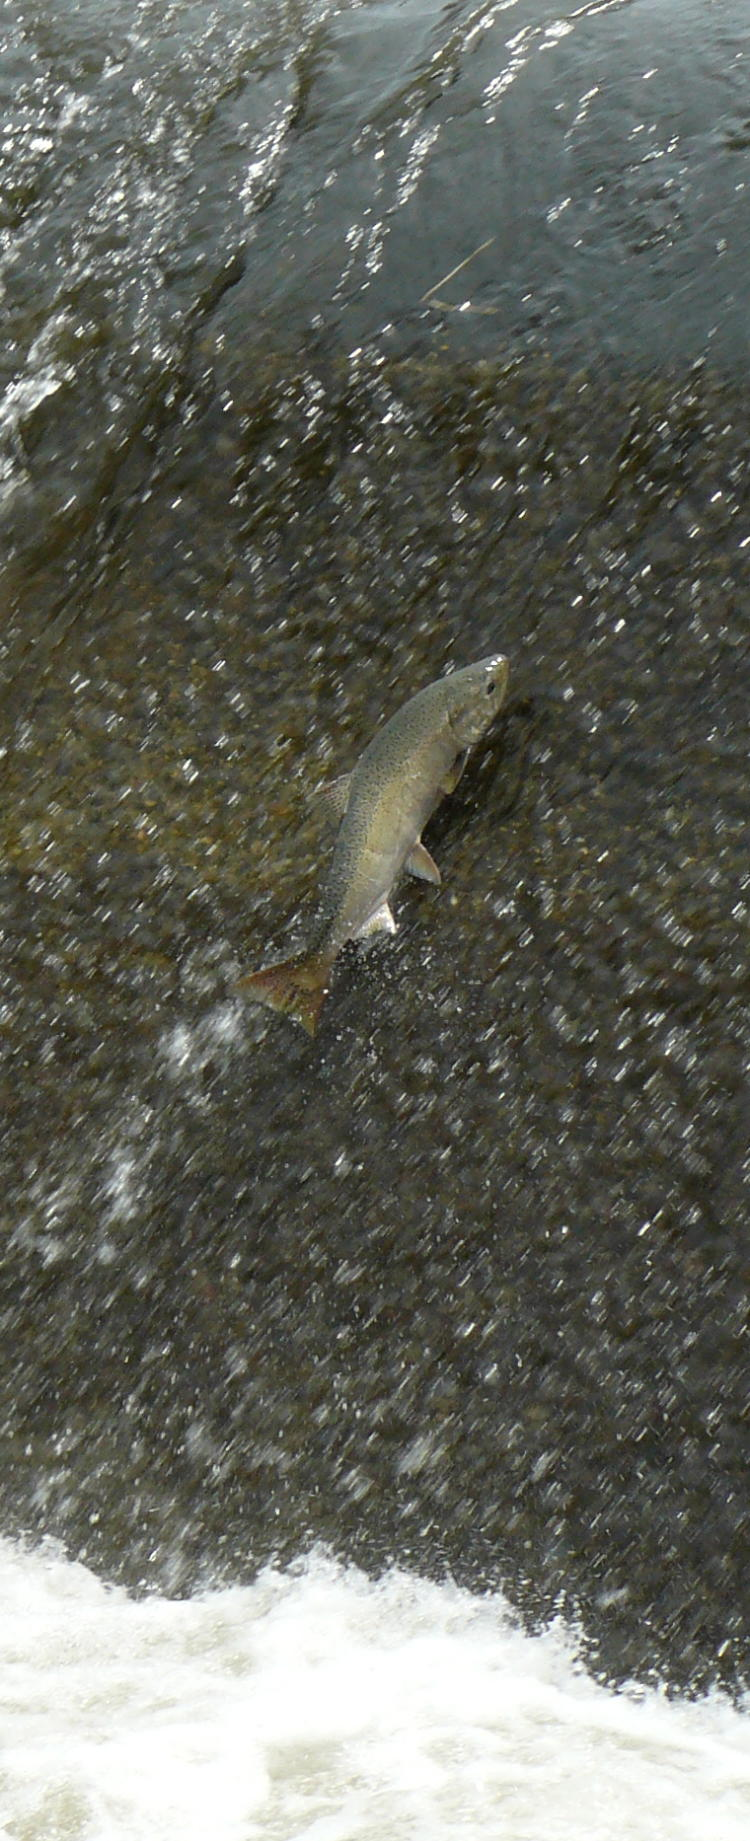 A Spring Chinook leaping at Nursery Bridge Dam in the Walla Walla River near Milton-Freewater, Oregon.